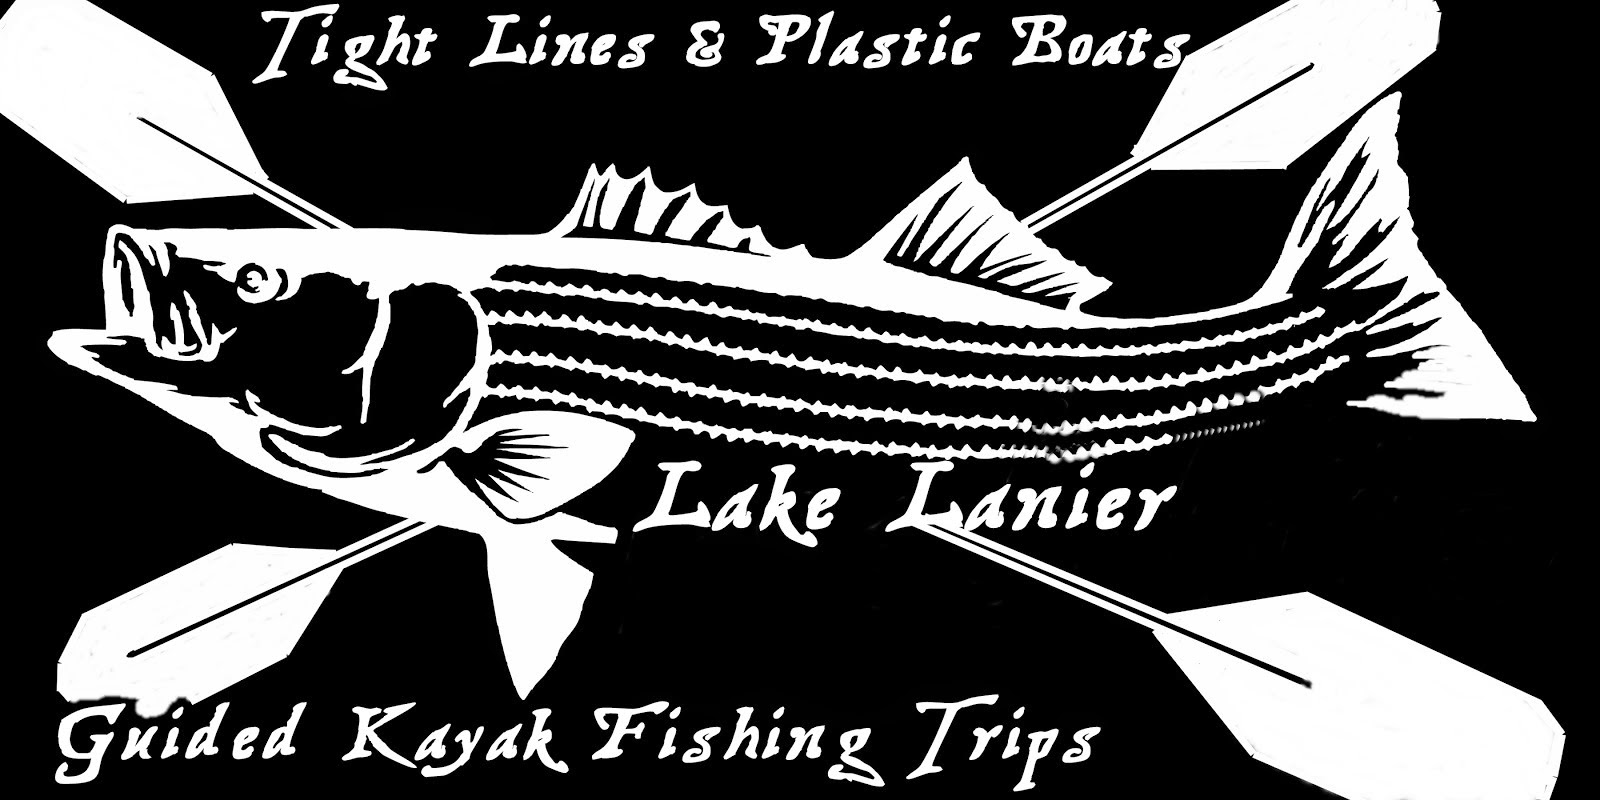 Guided Kayak Fishing Trips